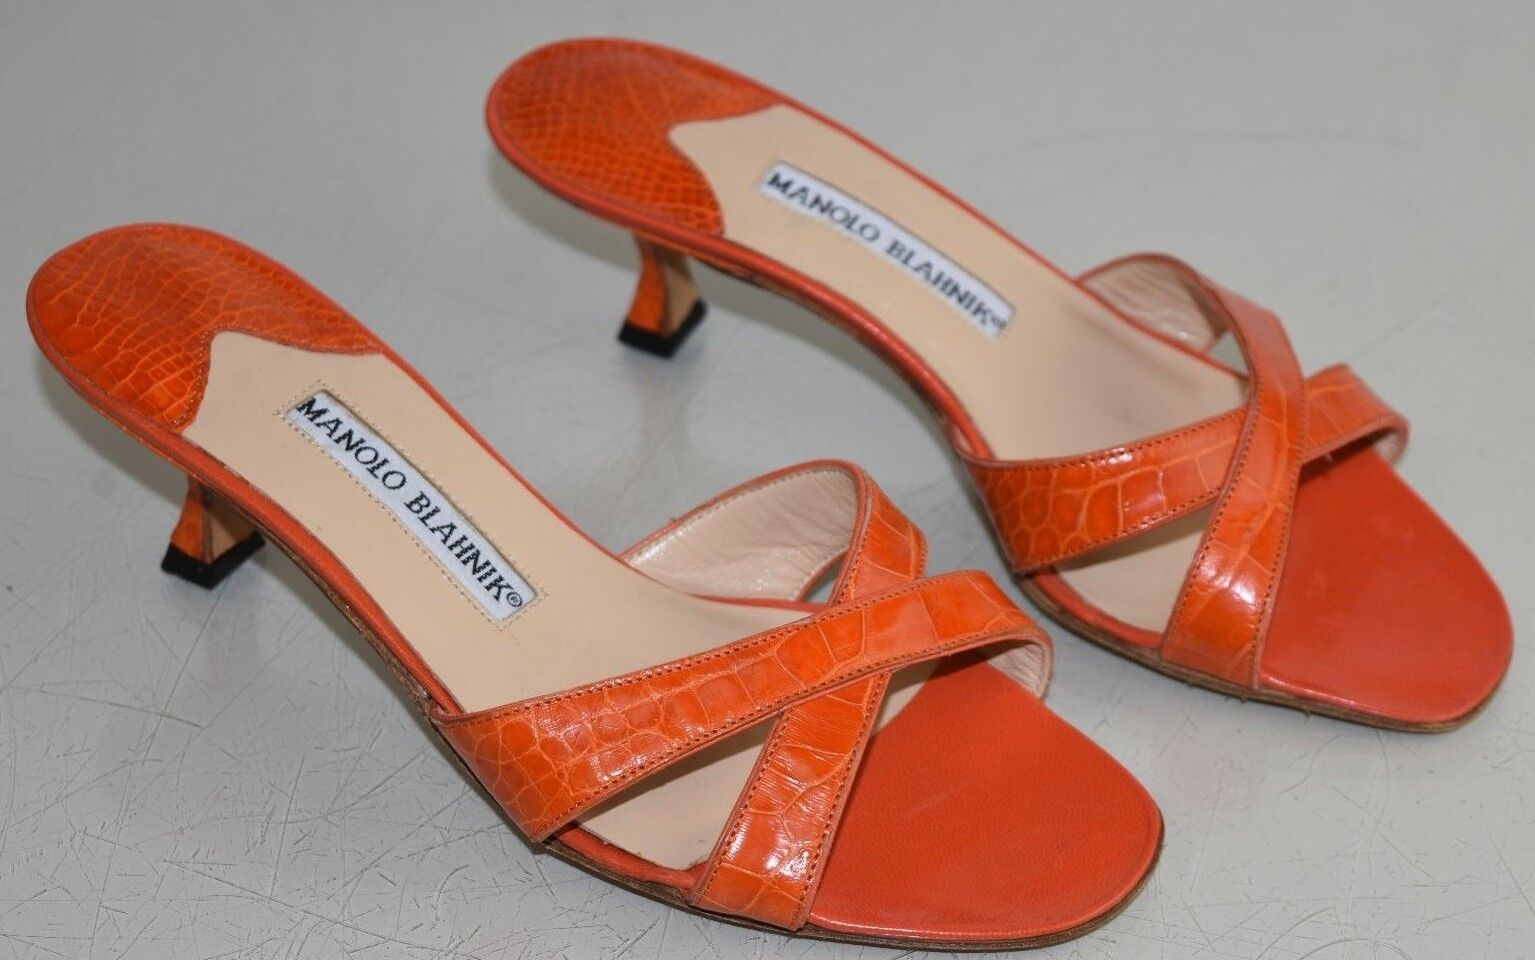 Neuf Signé par Manolo Blahnik Callamu Orange Alligator Crocodile Sandales 35